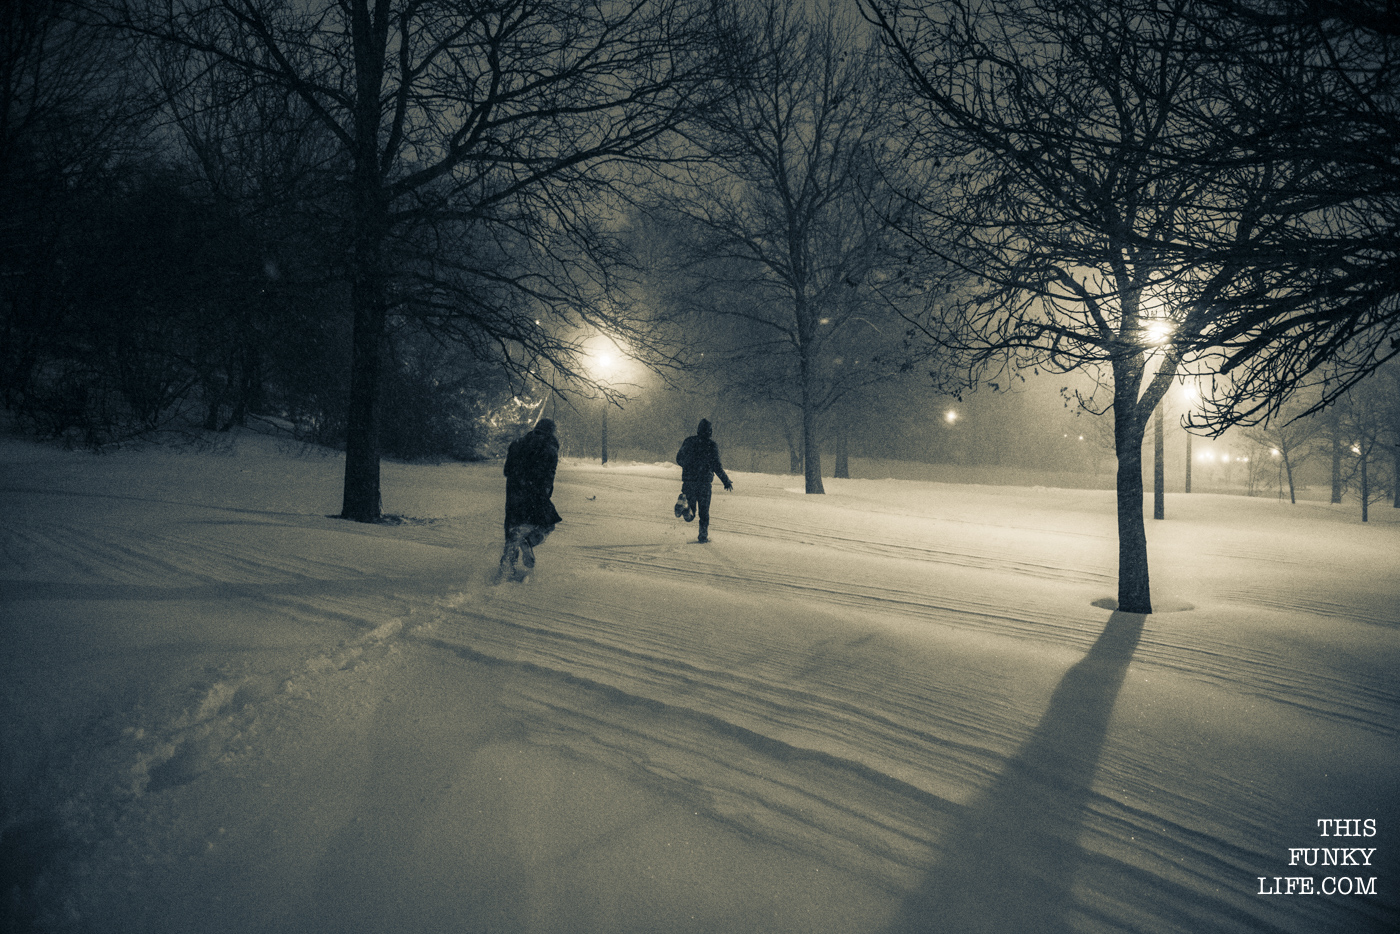 Adults getting to be kids again in the late night fresh snow